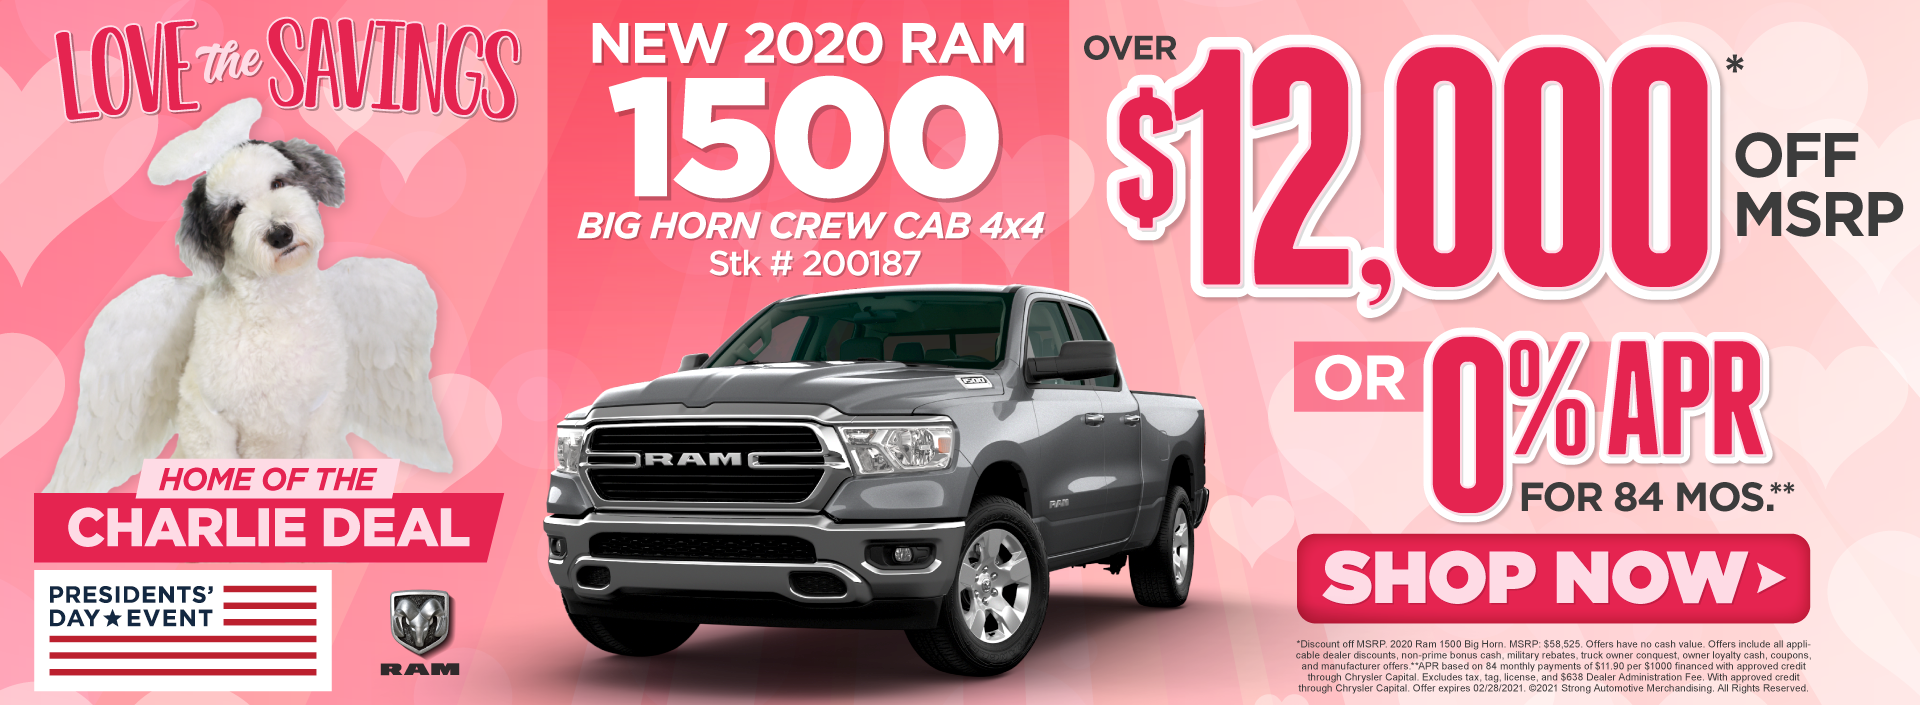 New 2020 Ram 1500 Big Horn - Up to $12,000 off msrp - Act Now